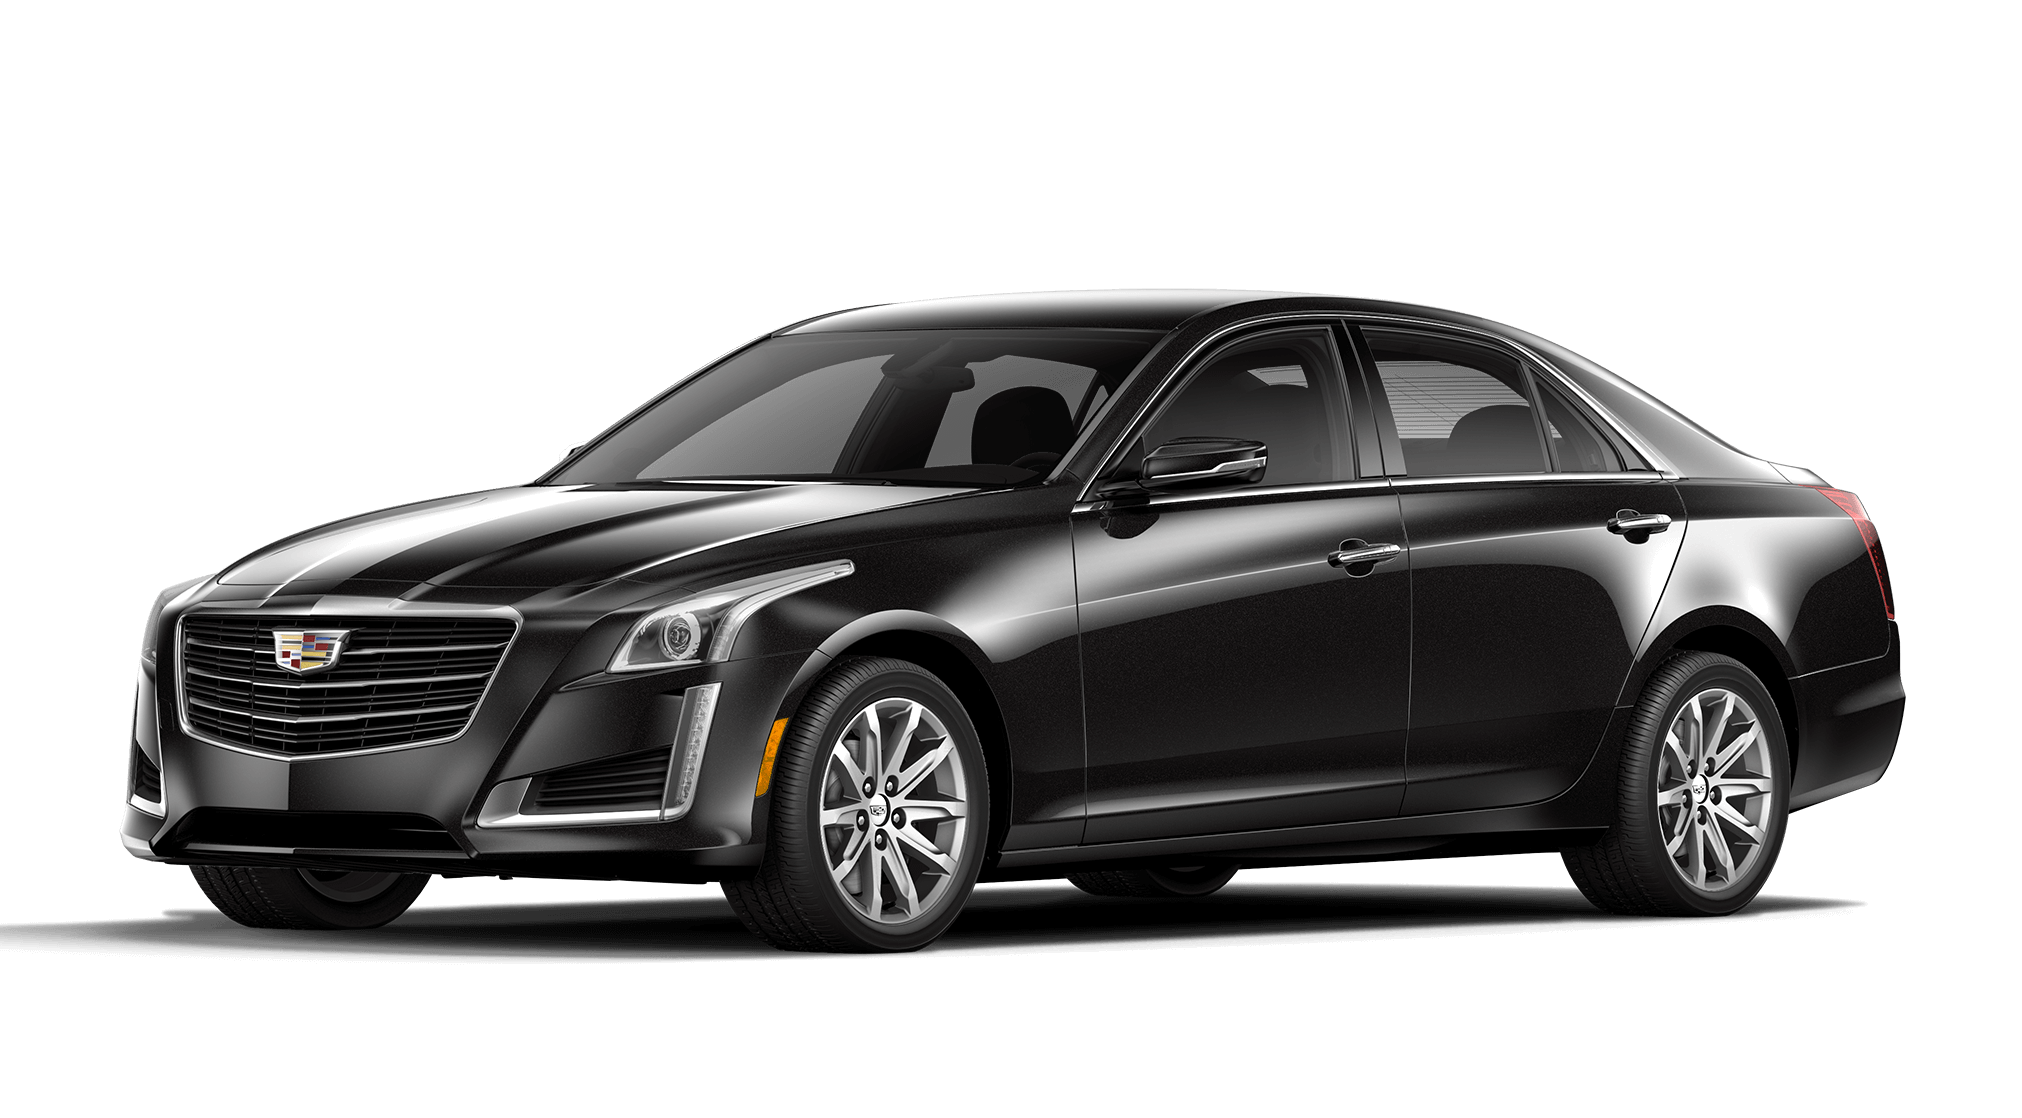 2017 cadillac cts winnipeg cts details specs gauthier. Black Bedroom Furniture Sets. Home Design Ideas